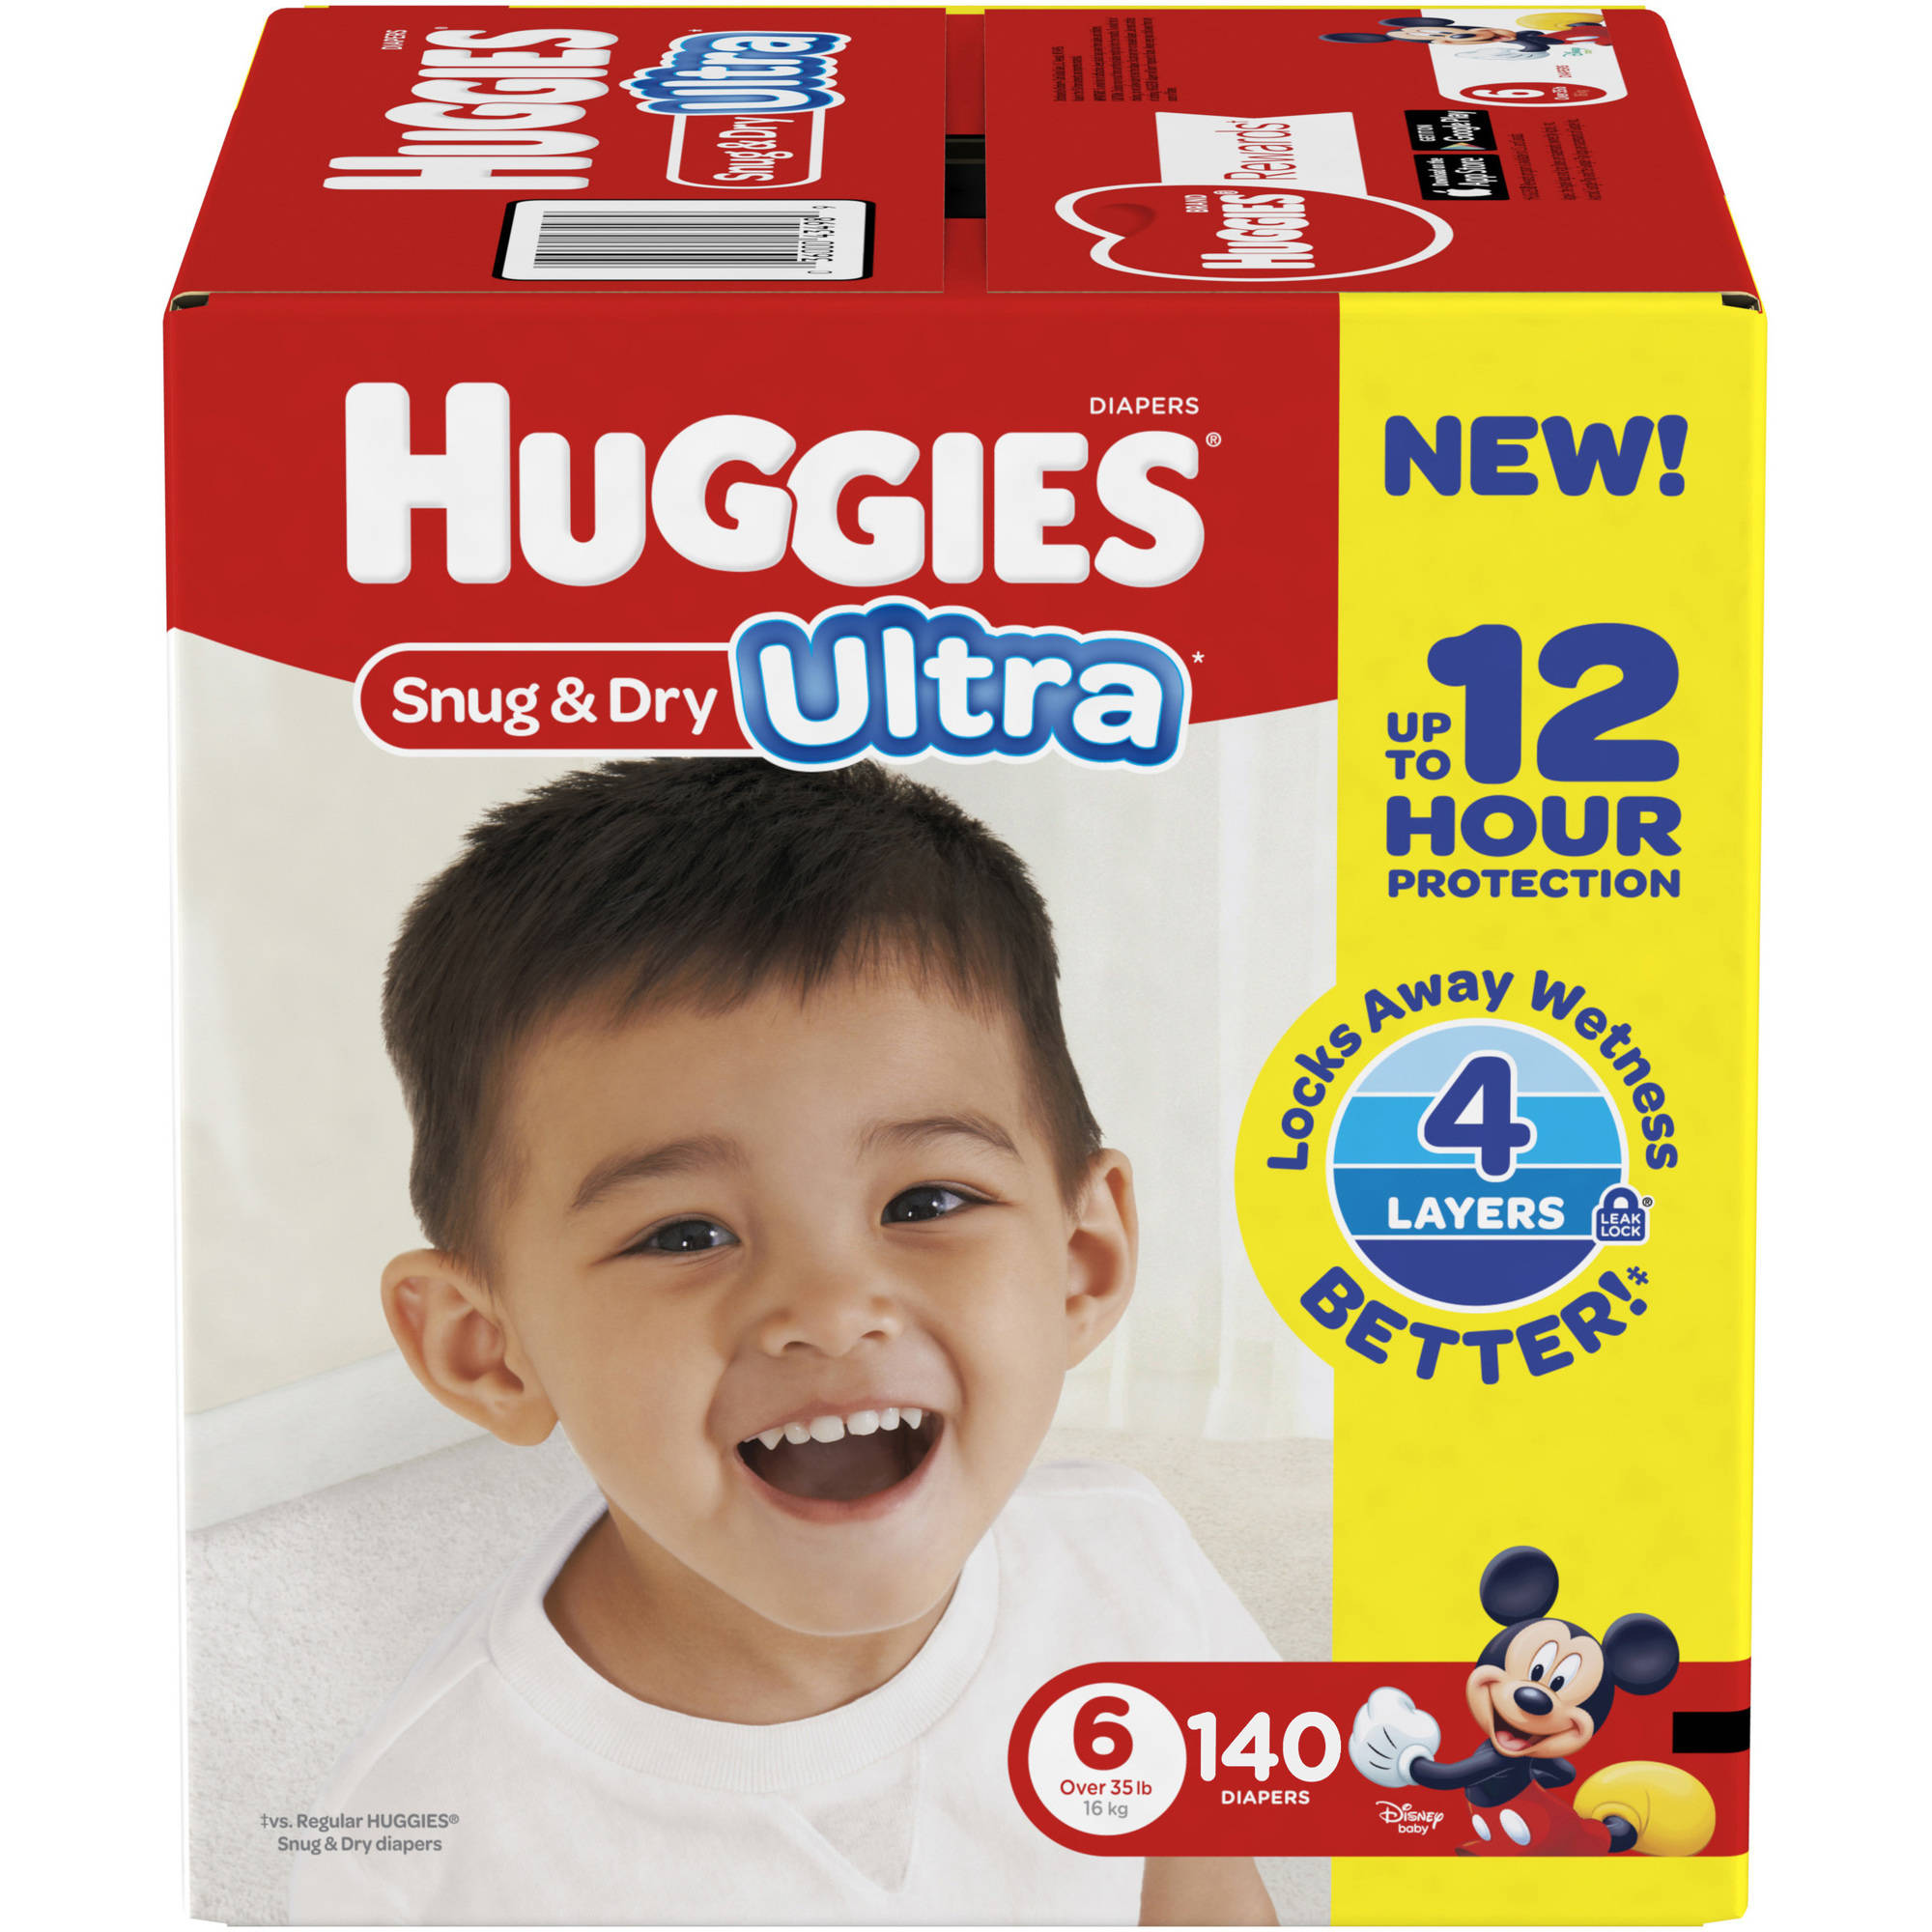 HUGGIES Snug & Dry Ultra Diapers, Size 6 (Choose Diaper Count)